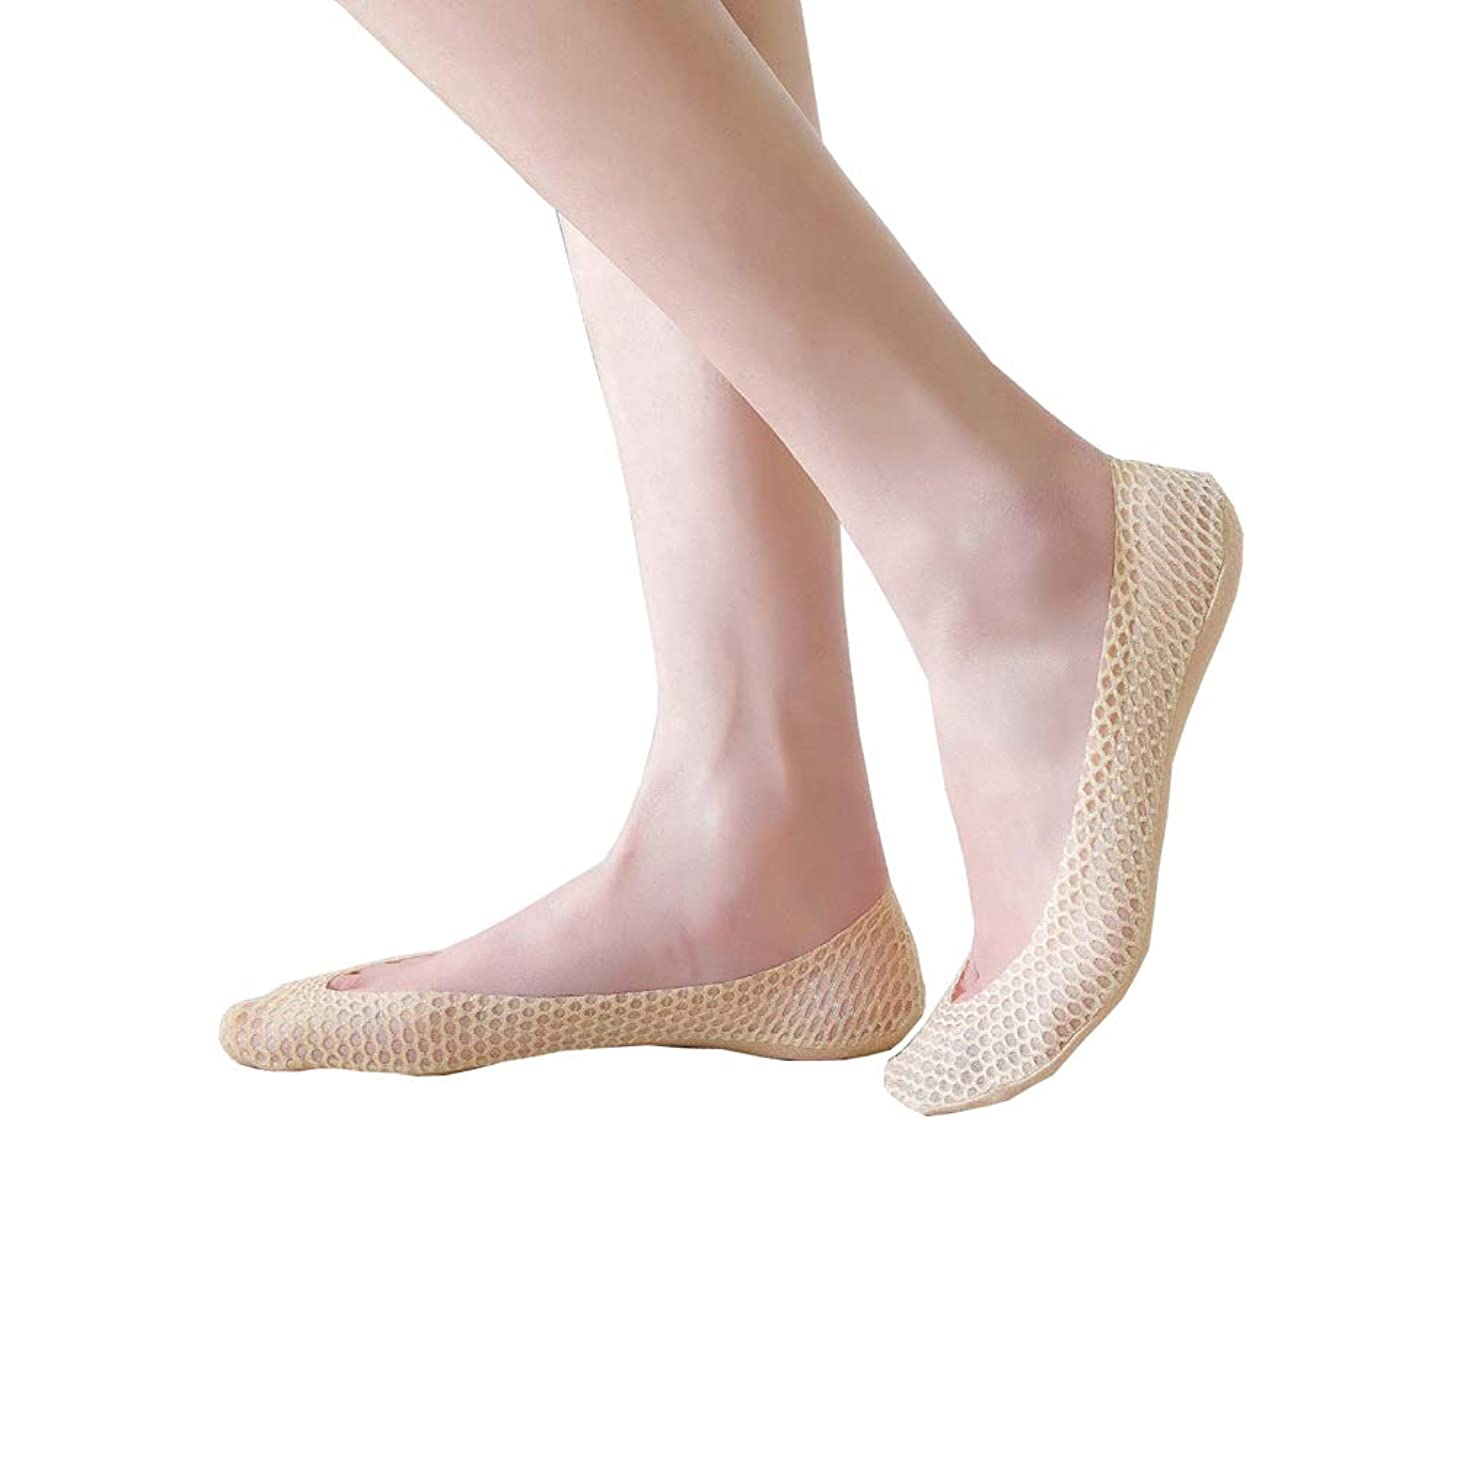 Womens No Show Socks, Ladys Scallion Series Stockings Silver Glitter Mesh Boat Invisible Low Cut Liners Socks 5/10 Pairs